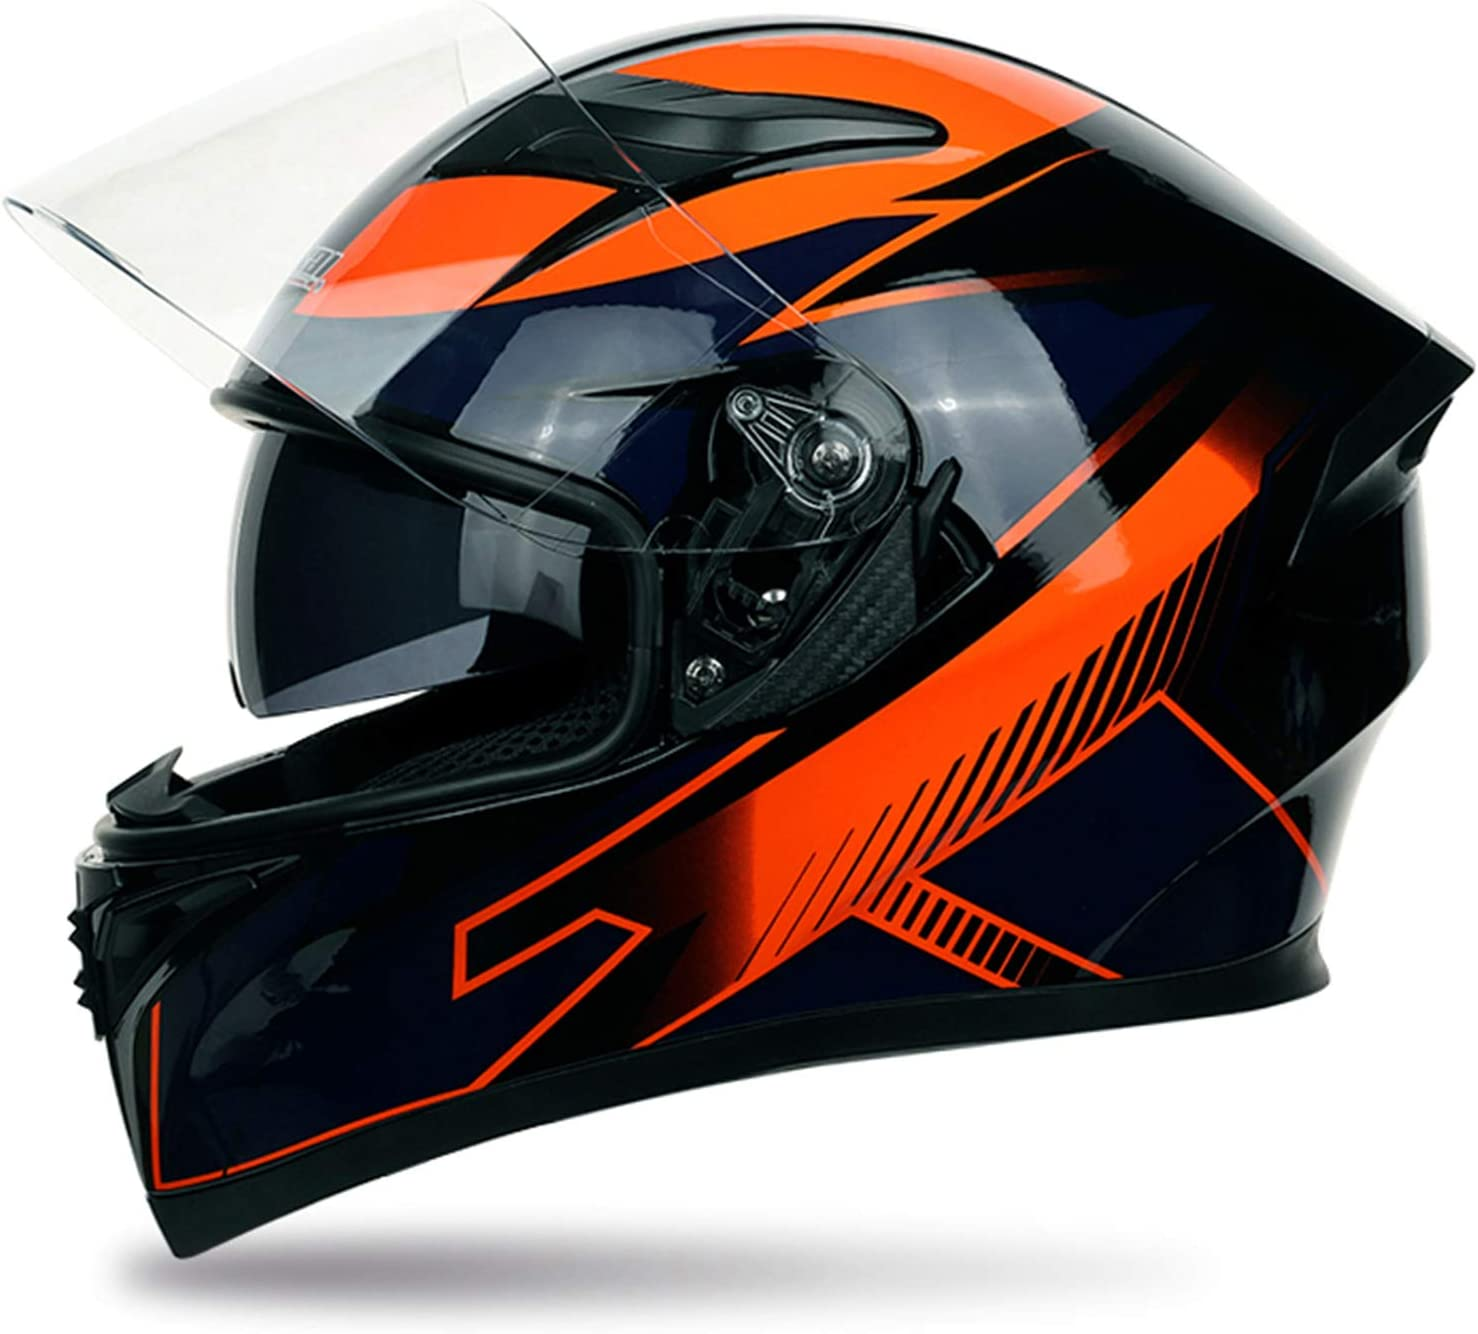 Full Face 2021 San Diego Mall model Helmet Motorcycle for Comfortable B Adult Men